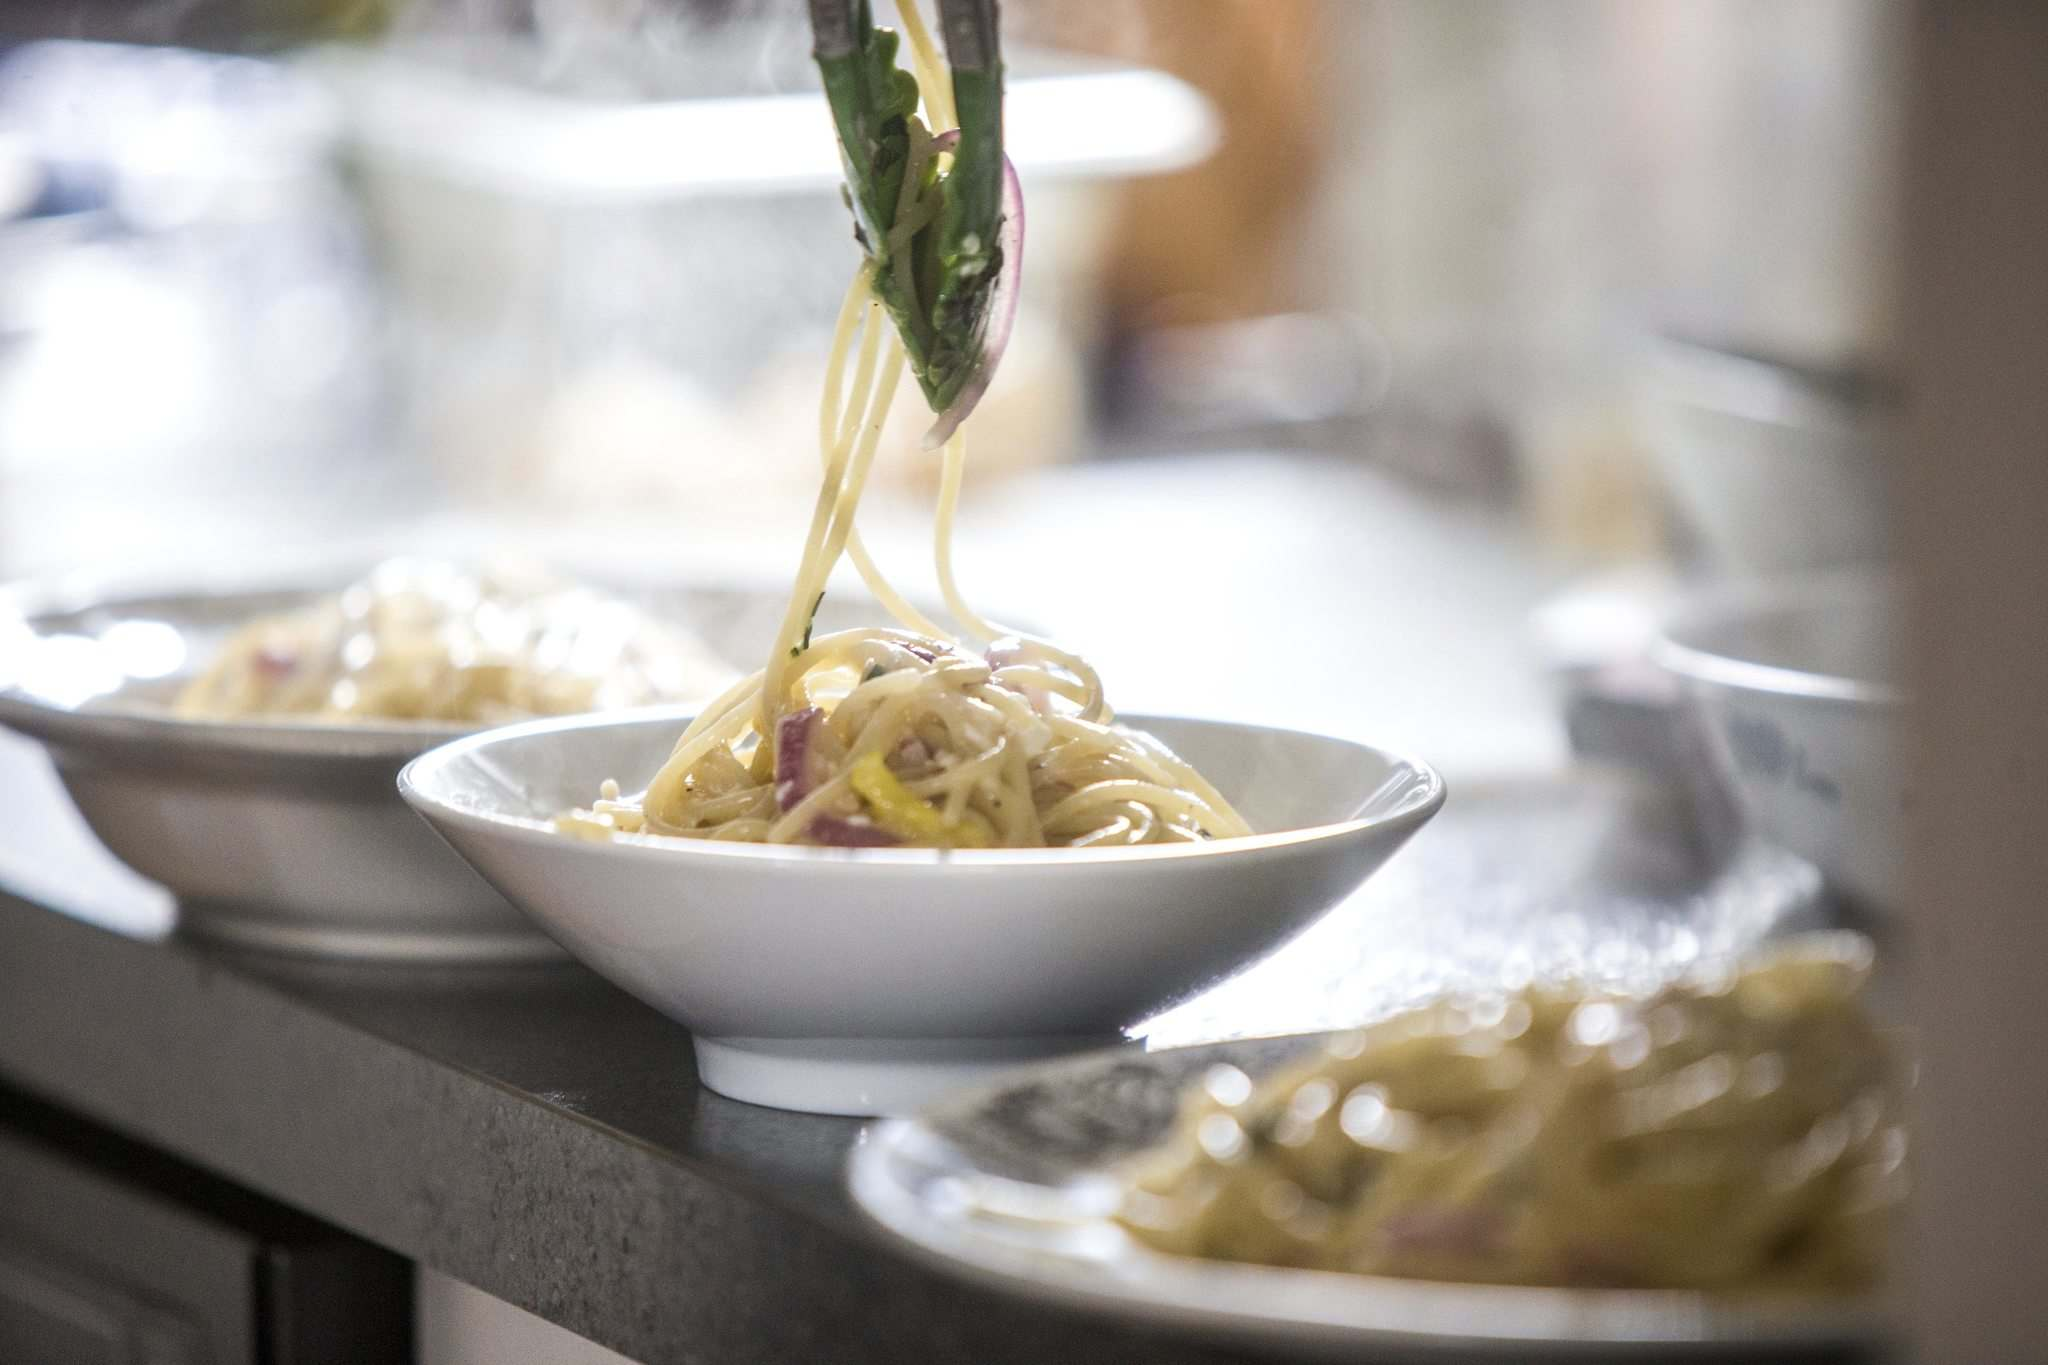 Hebel puts a finishing touch on her Pasta Aglio et olio with Gamberi.</p>